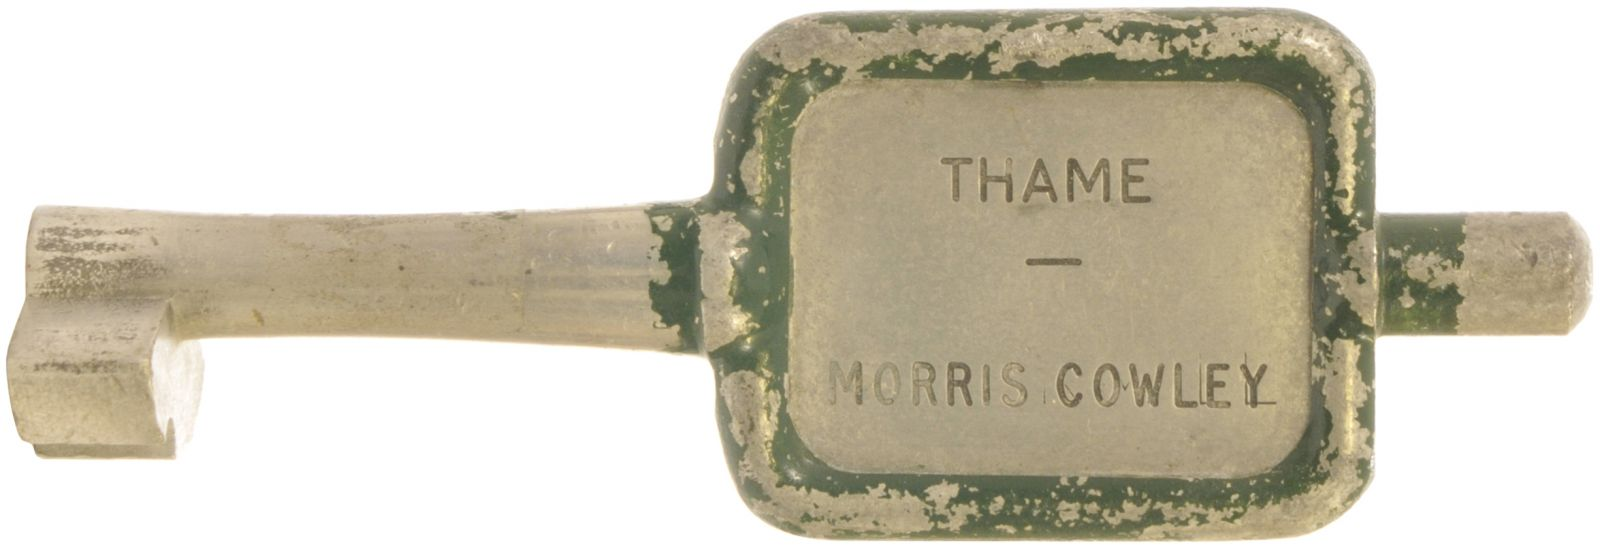 Lot 6 - Single Line Keys, Thame - Morris Cowley: A single line key token, THAME-MORRIS COWLEY, (alloy), from